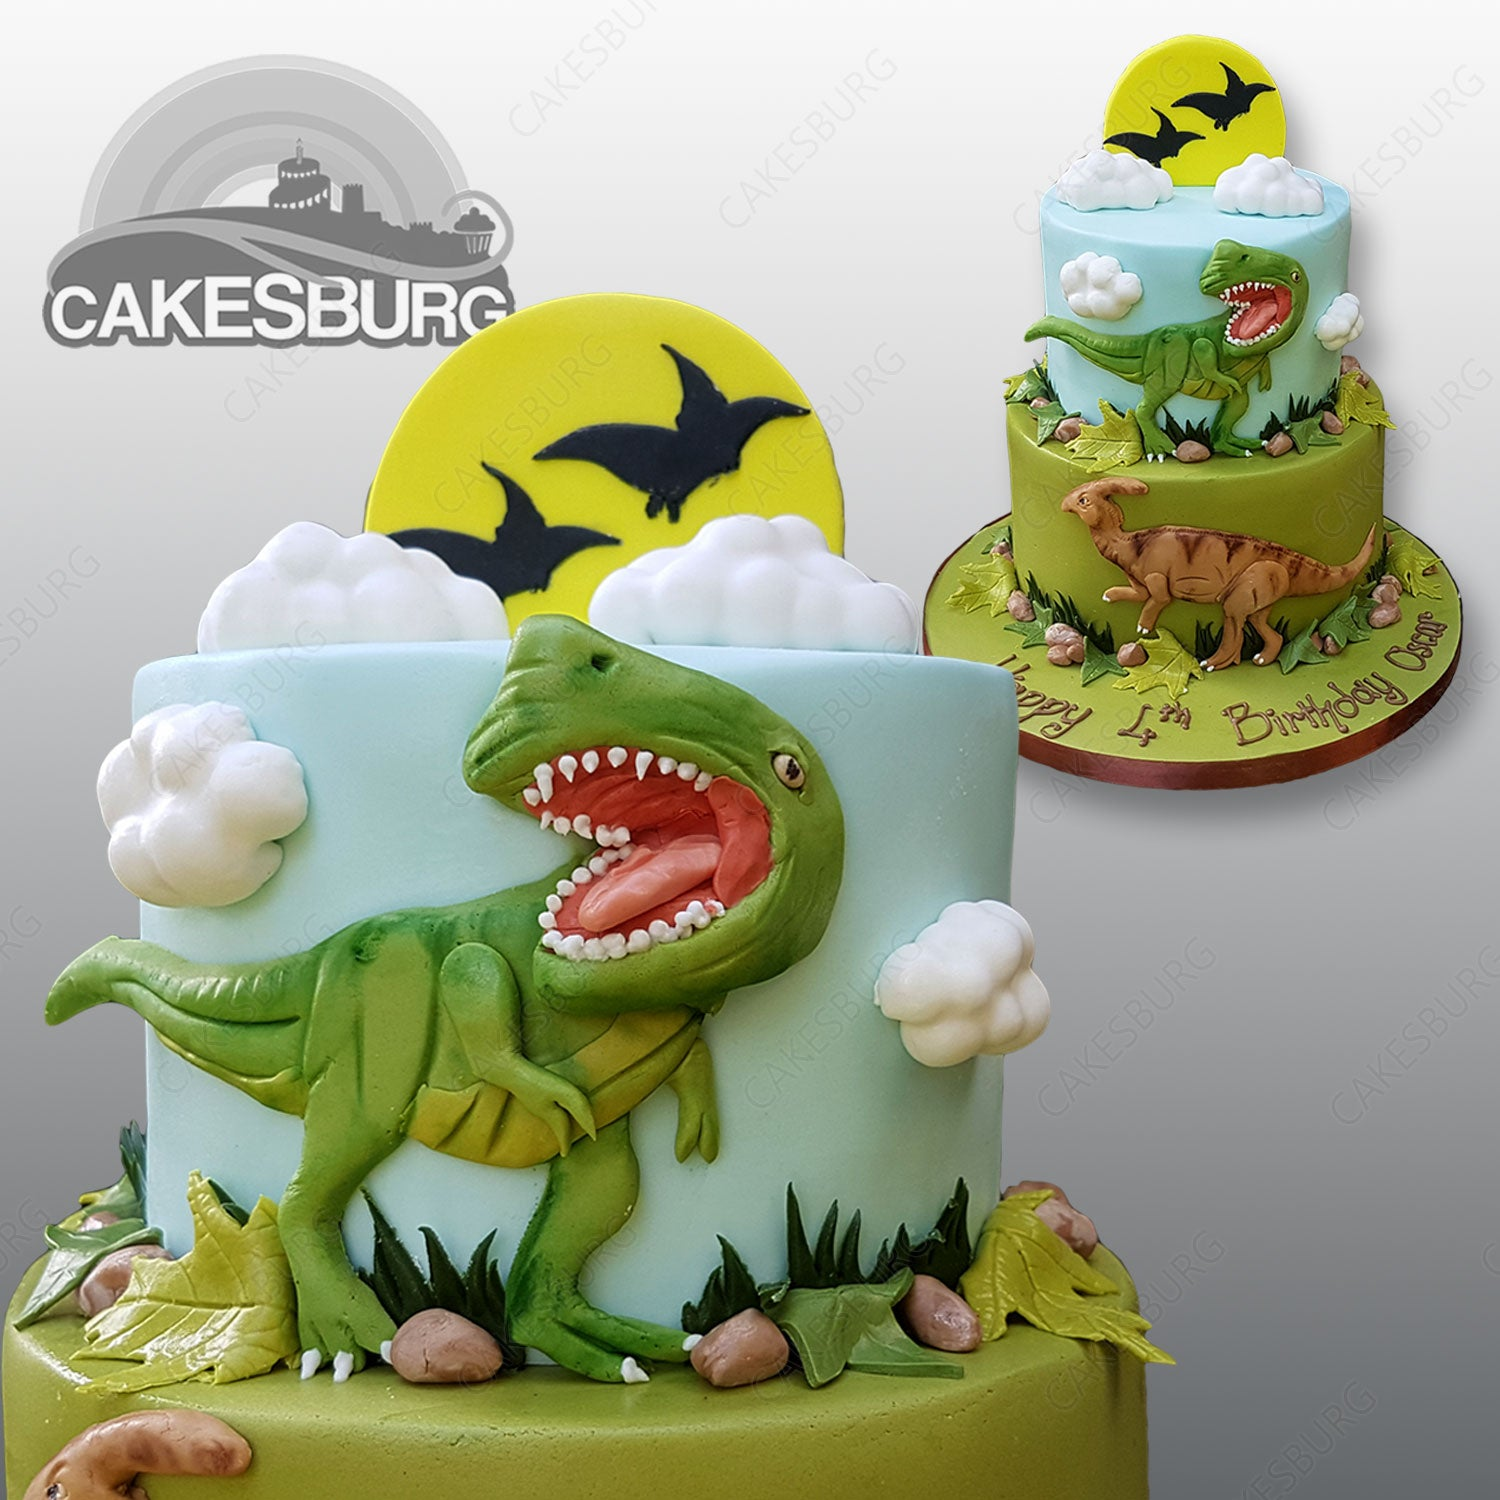 Astonishing T Rex Dinosaur Cake Cakesburg Online Premium Cake Shop Personalised Birthday Cards Paralily Jamesorg